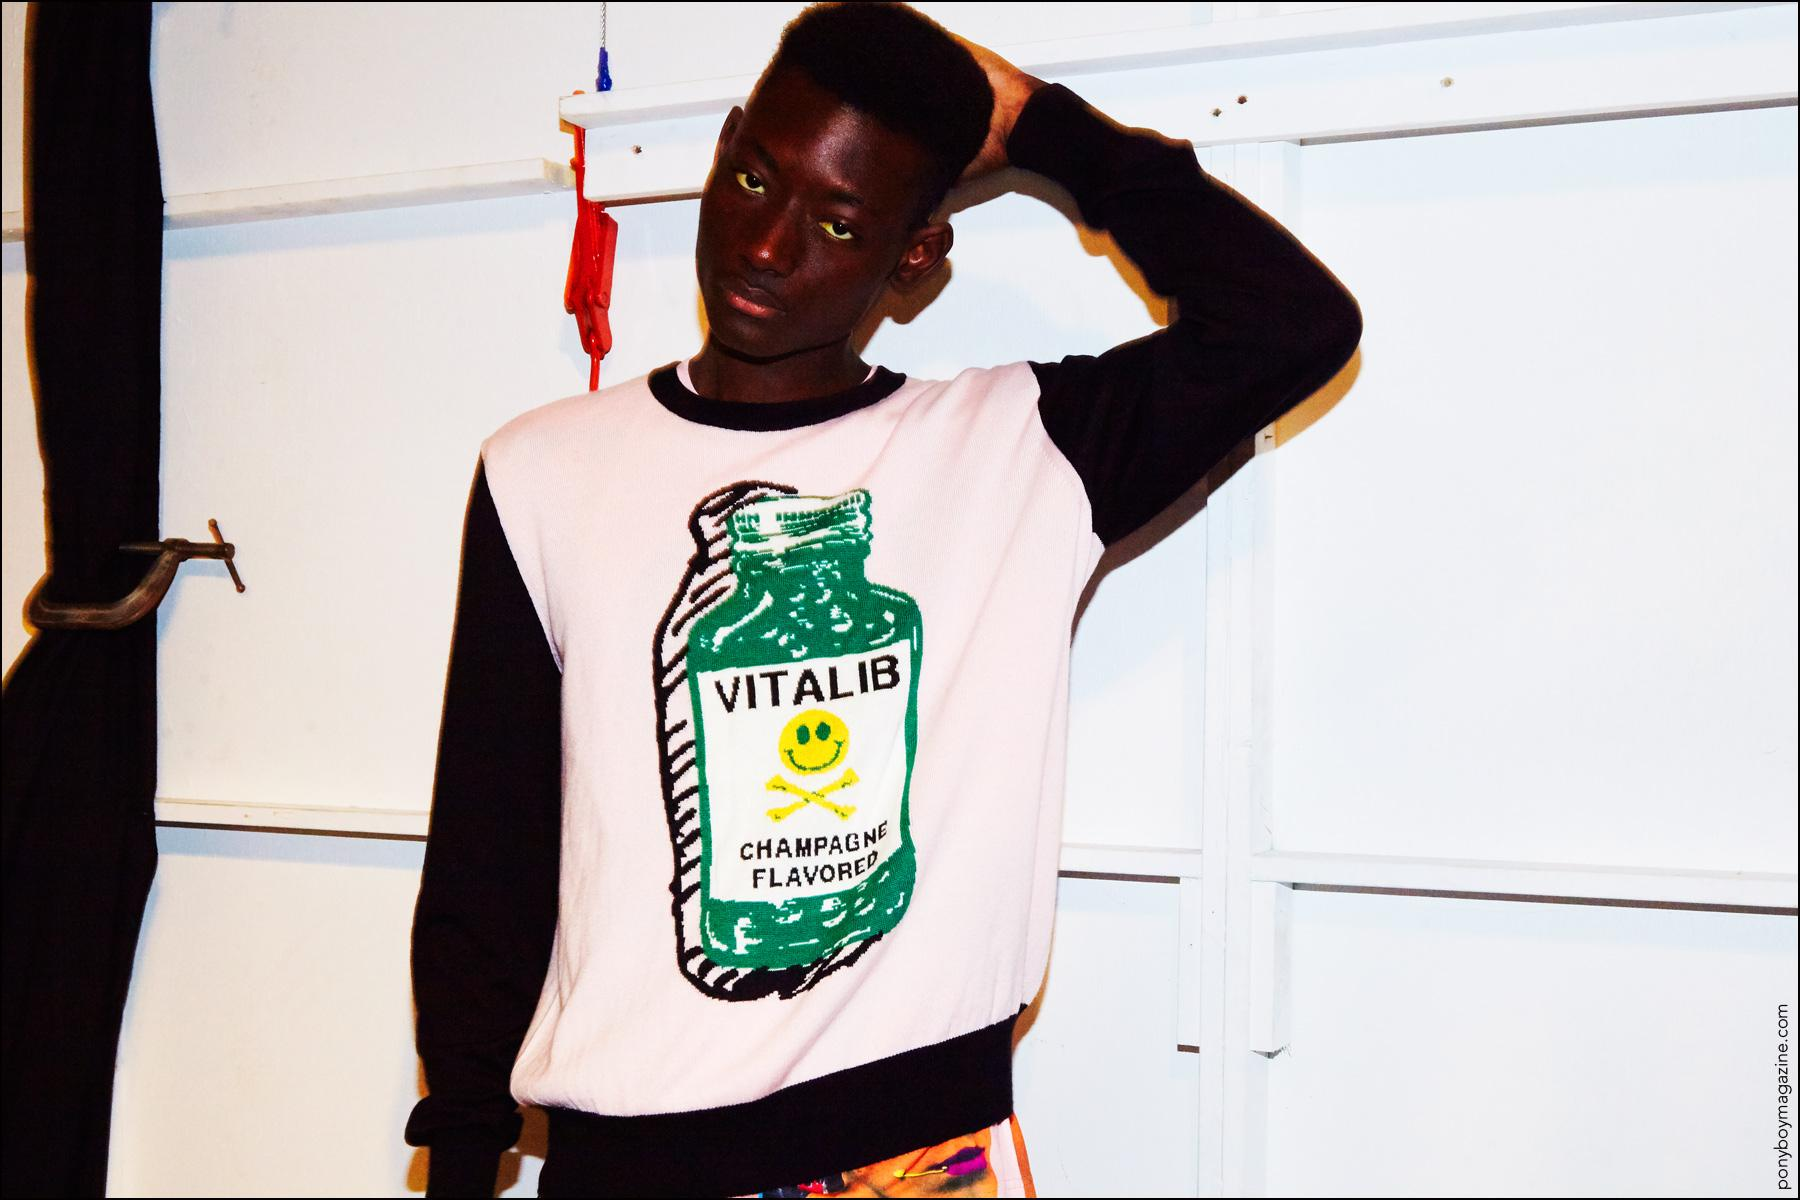 Model Youssouf Bamba snapped backstage at Libertine Spring/Summer 2017 collection. Photography by Alexander Thompson for Ponyboy magazine in New York City.